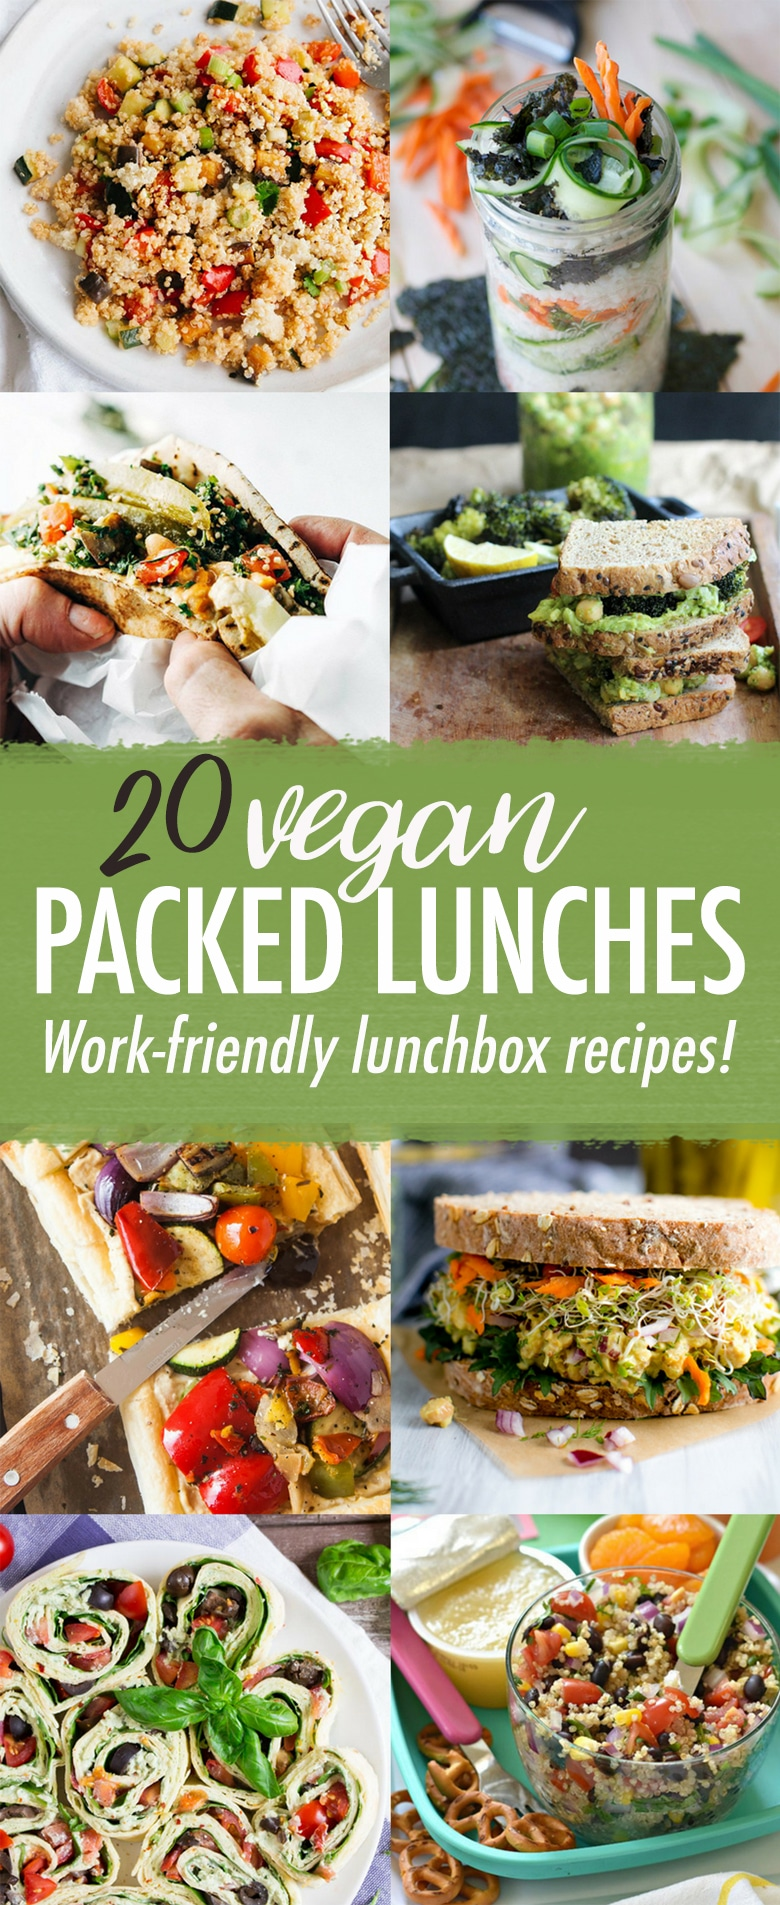 20 Vegan Packed Lunch Recipes Wallflower Kitchen